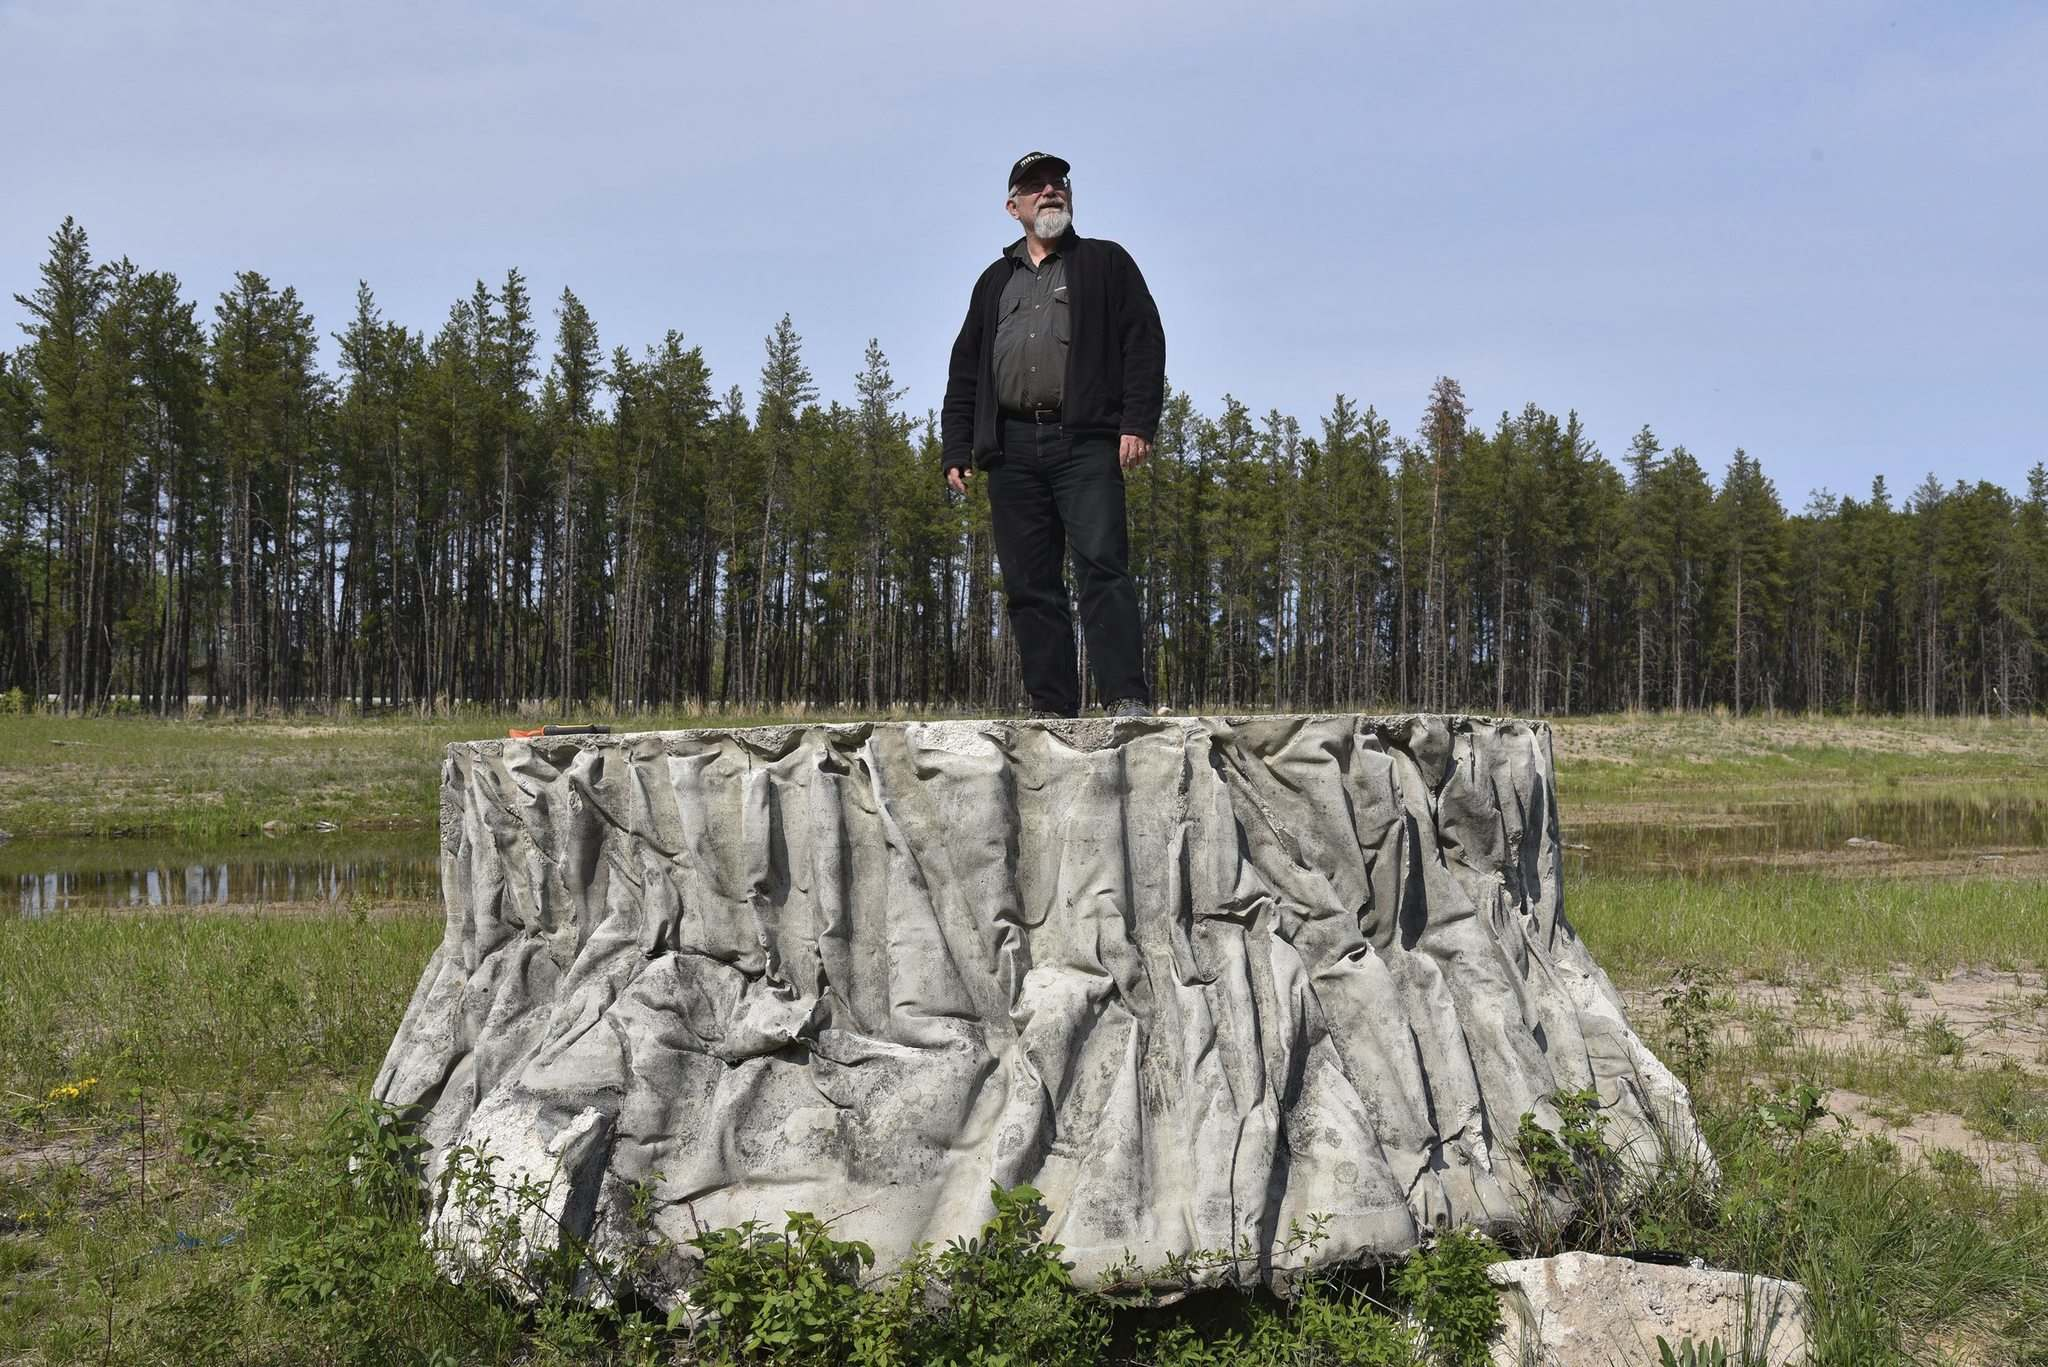 Smokey's Tree Stump is located between Richer and Hadashville just off the Trans-Canada Highway. (Gordon Goldsborough)